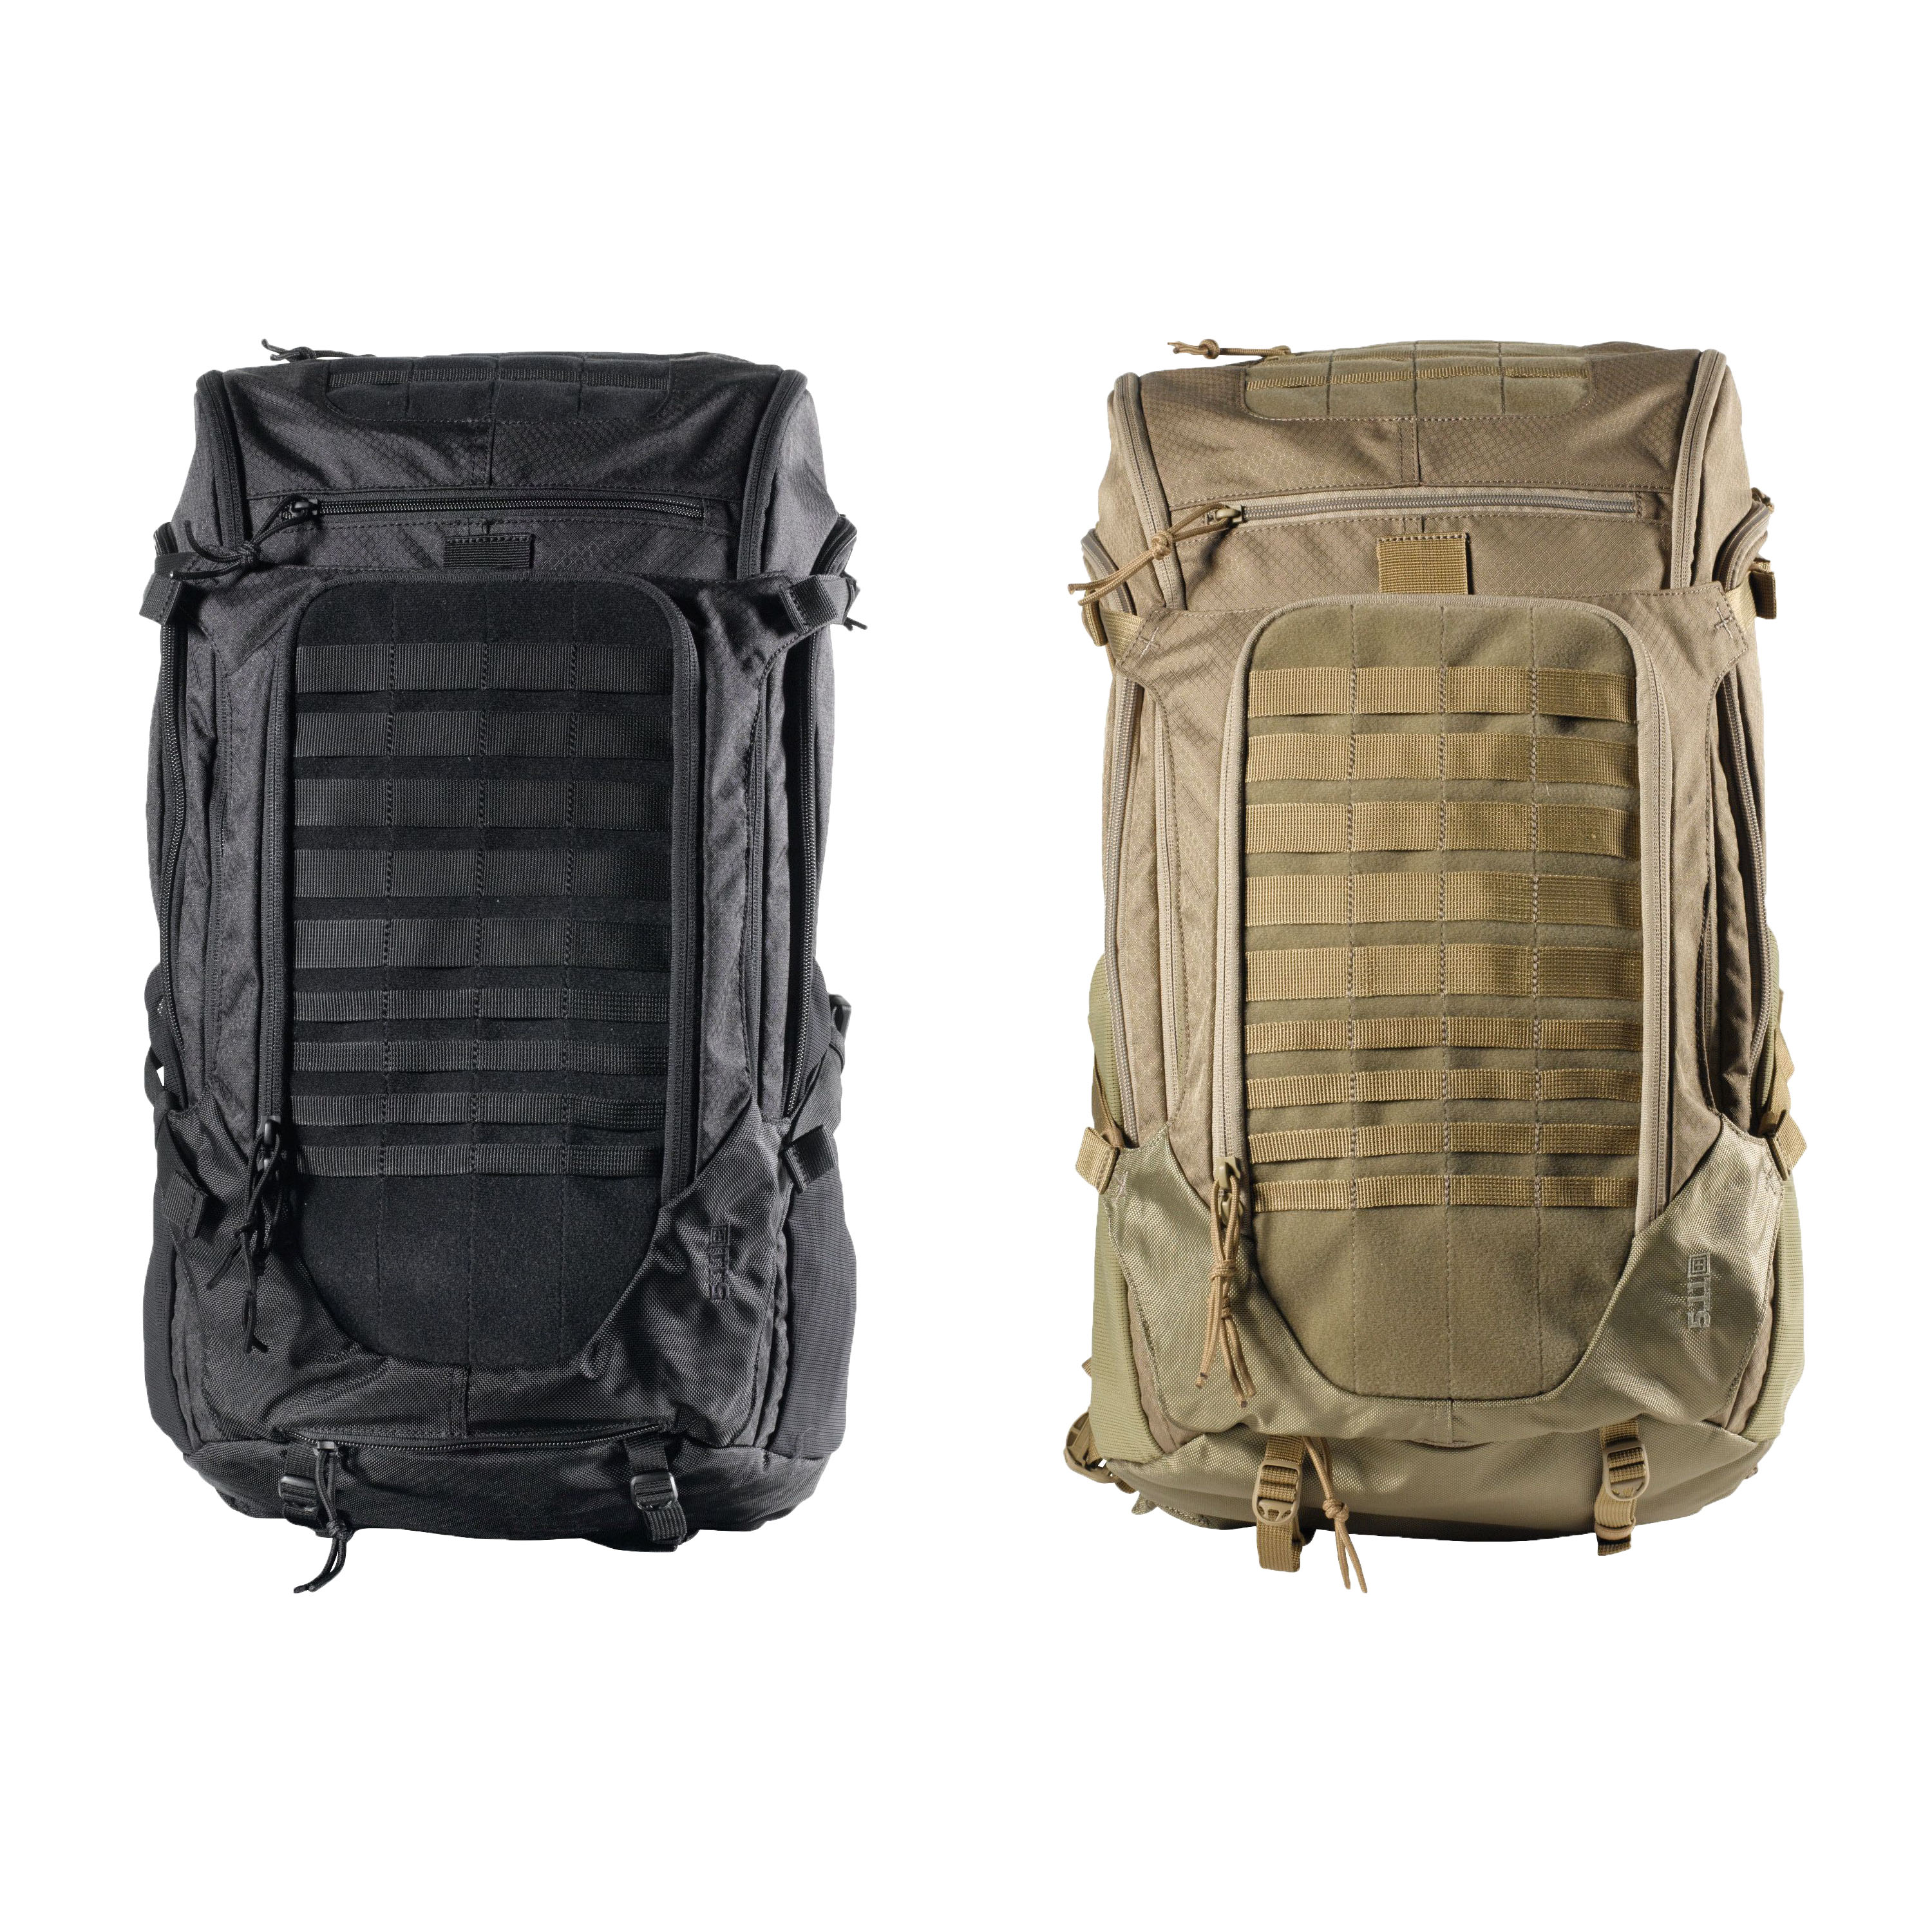 Details About 5 11 Tactical Ignitor Backpack 20l Bag Molle Storage Pockets Pouch Style 56149